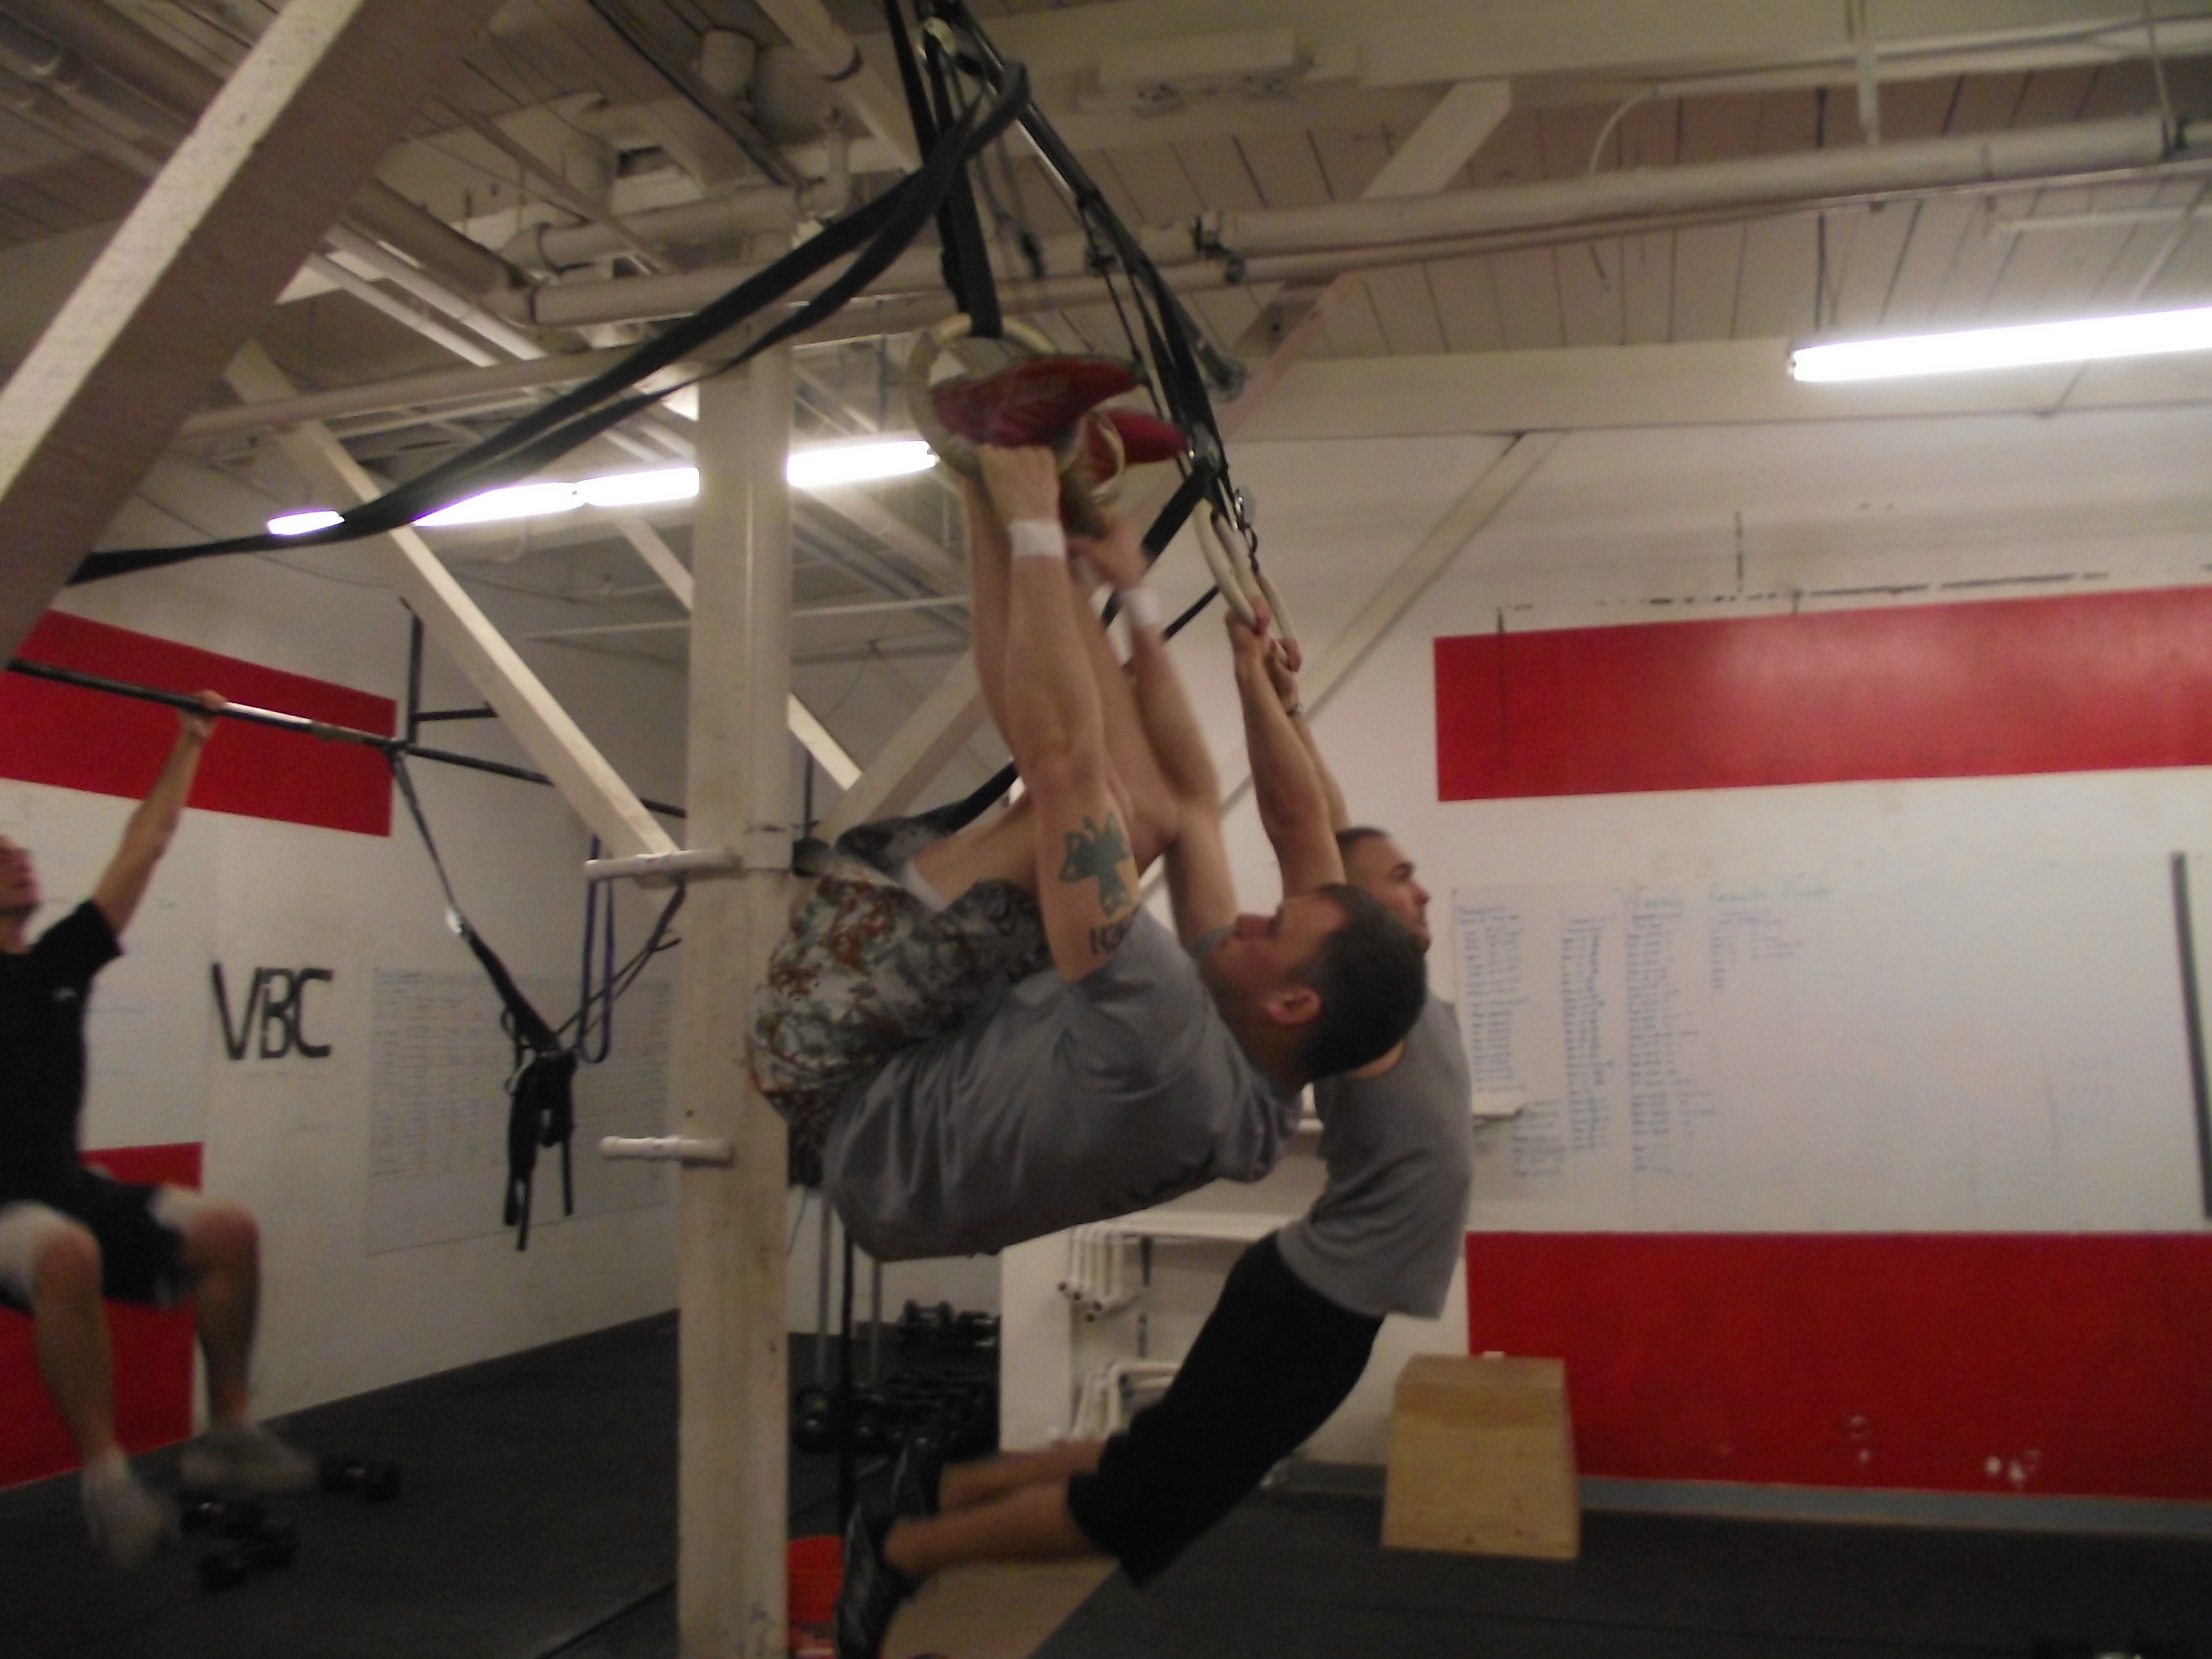 Ross and Mike's Toes Through Rings! Last Year we had one person do sectionals, this year we bumped up to 12 inside Vagabond CrossFit and 3 more people being trained online as well! Great Job Everyone!